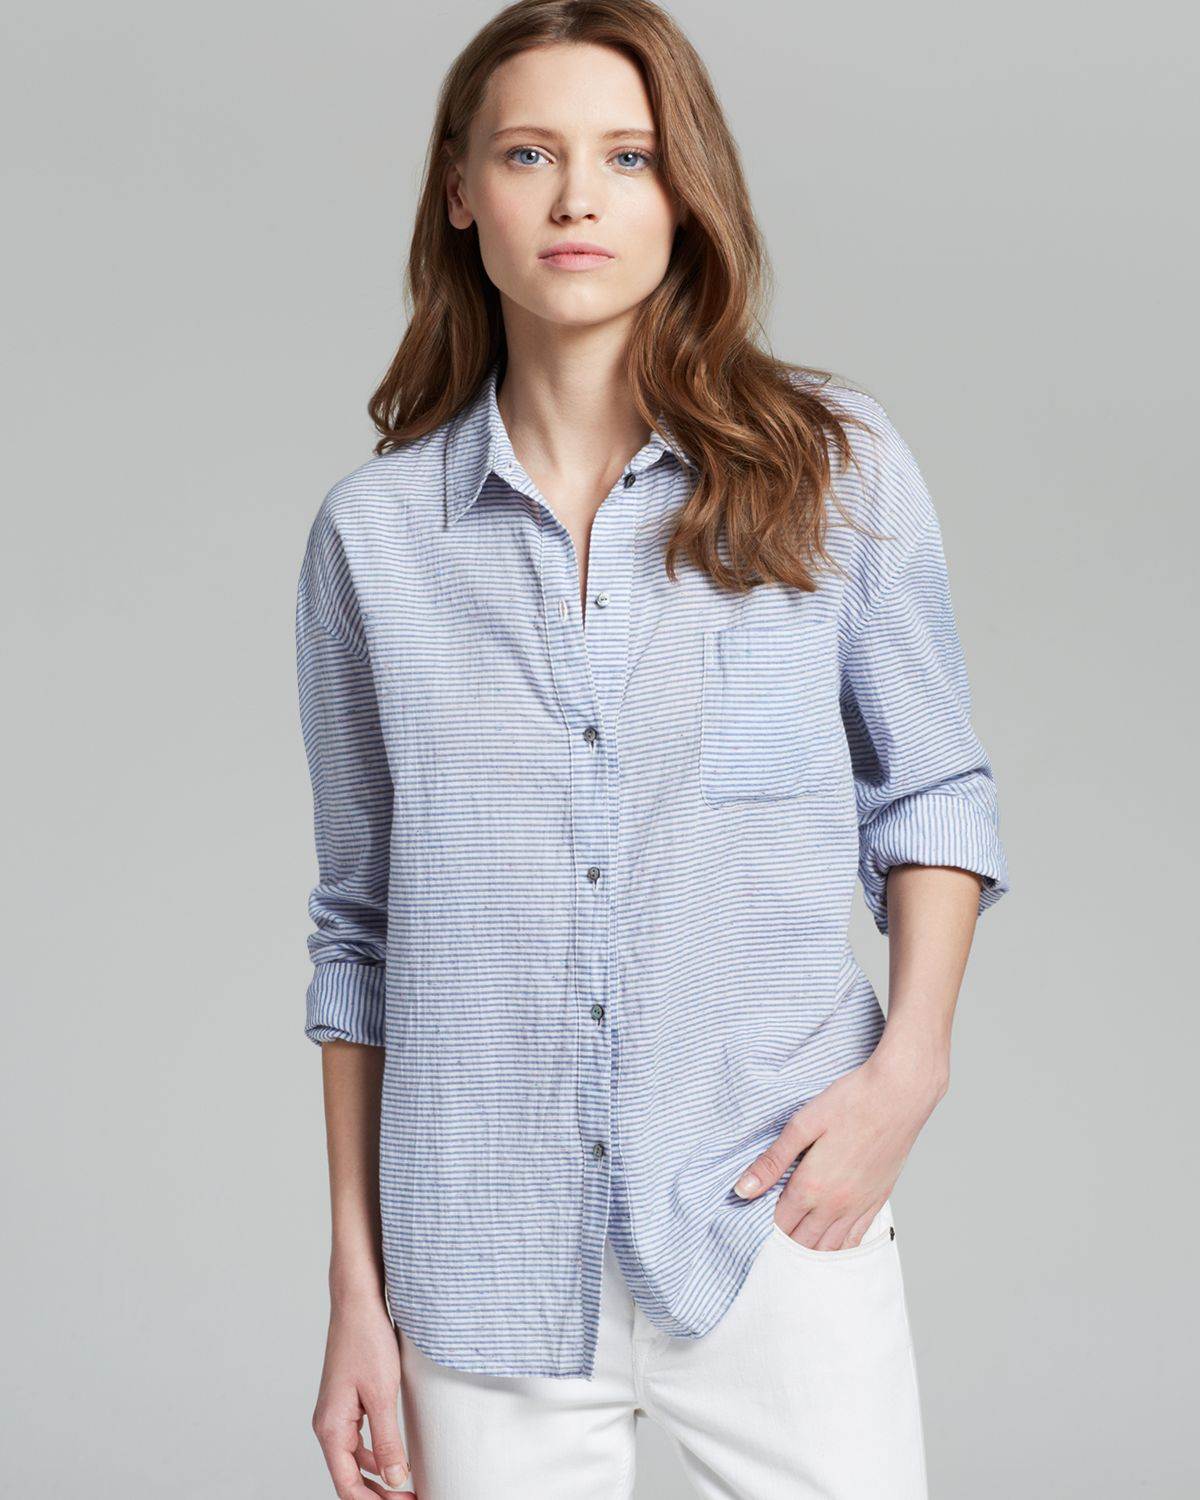 SHIRTS - Shirts Elizabeth & James Deals Cheap Online The Cheapest Best Wholesale Free Shipping Discount Cheap Real Eastbay XbSnpBm8y